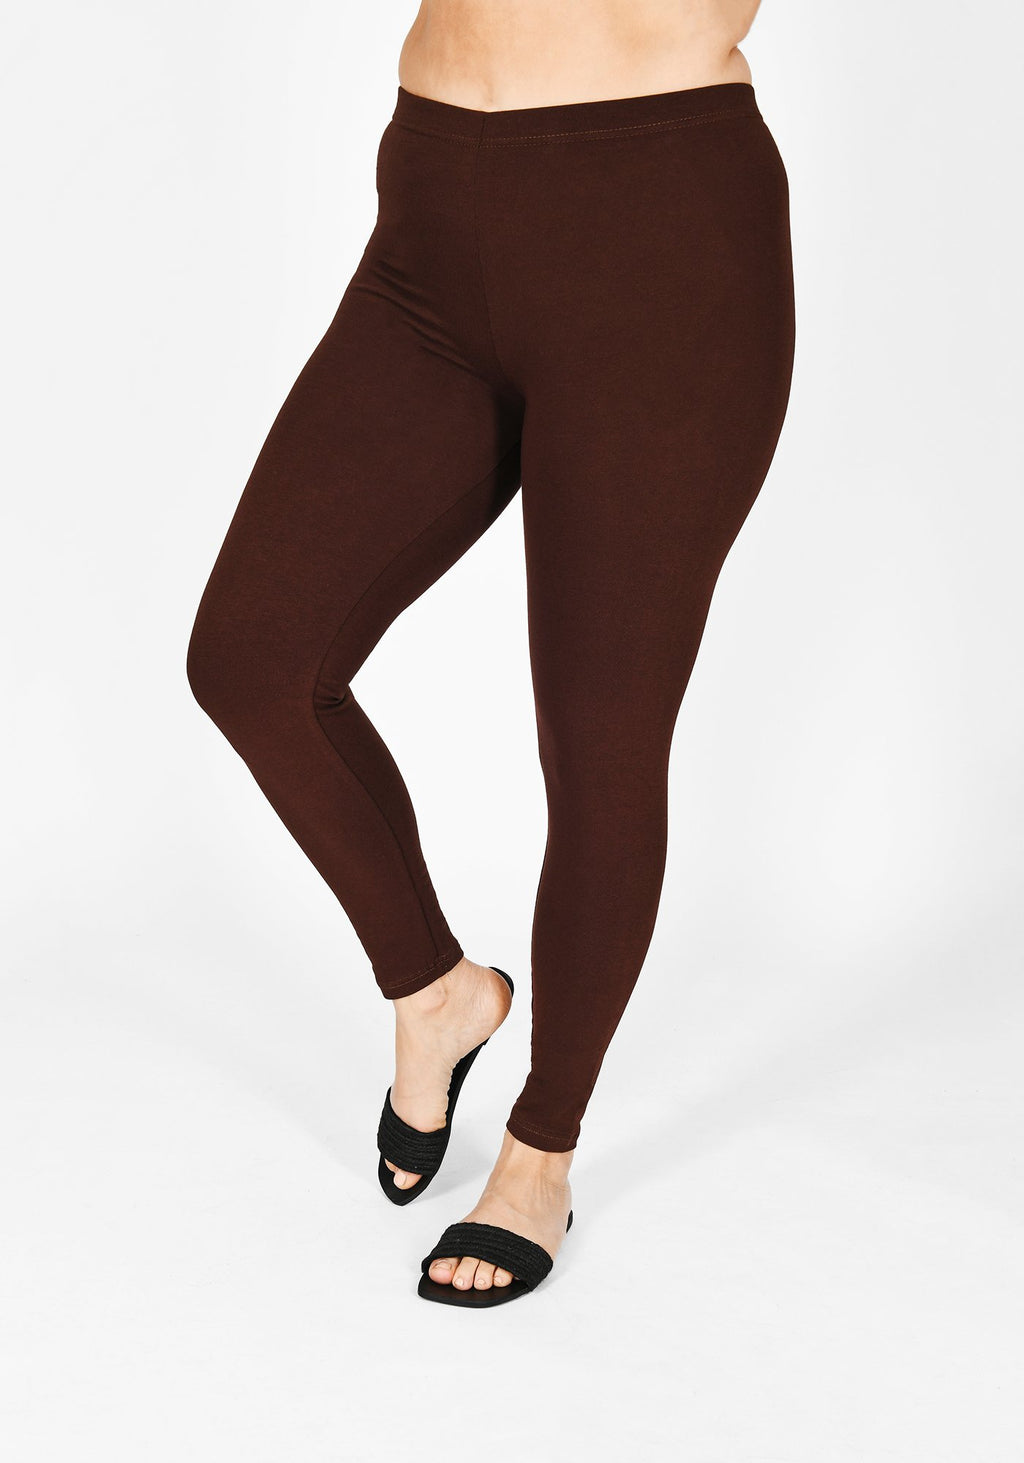 Classic Plus Size Chocolate Brown Leggings 1